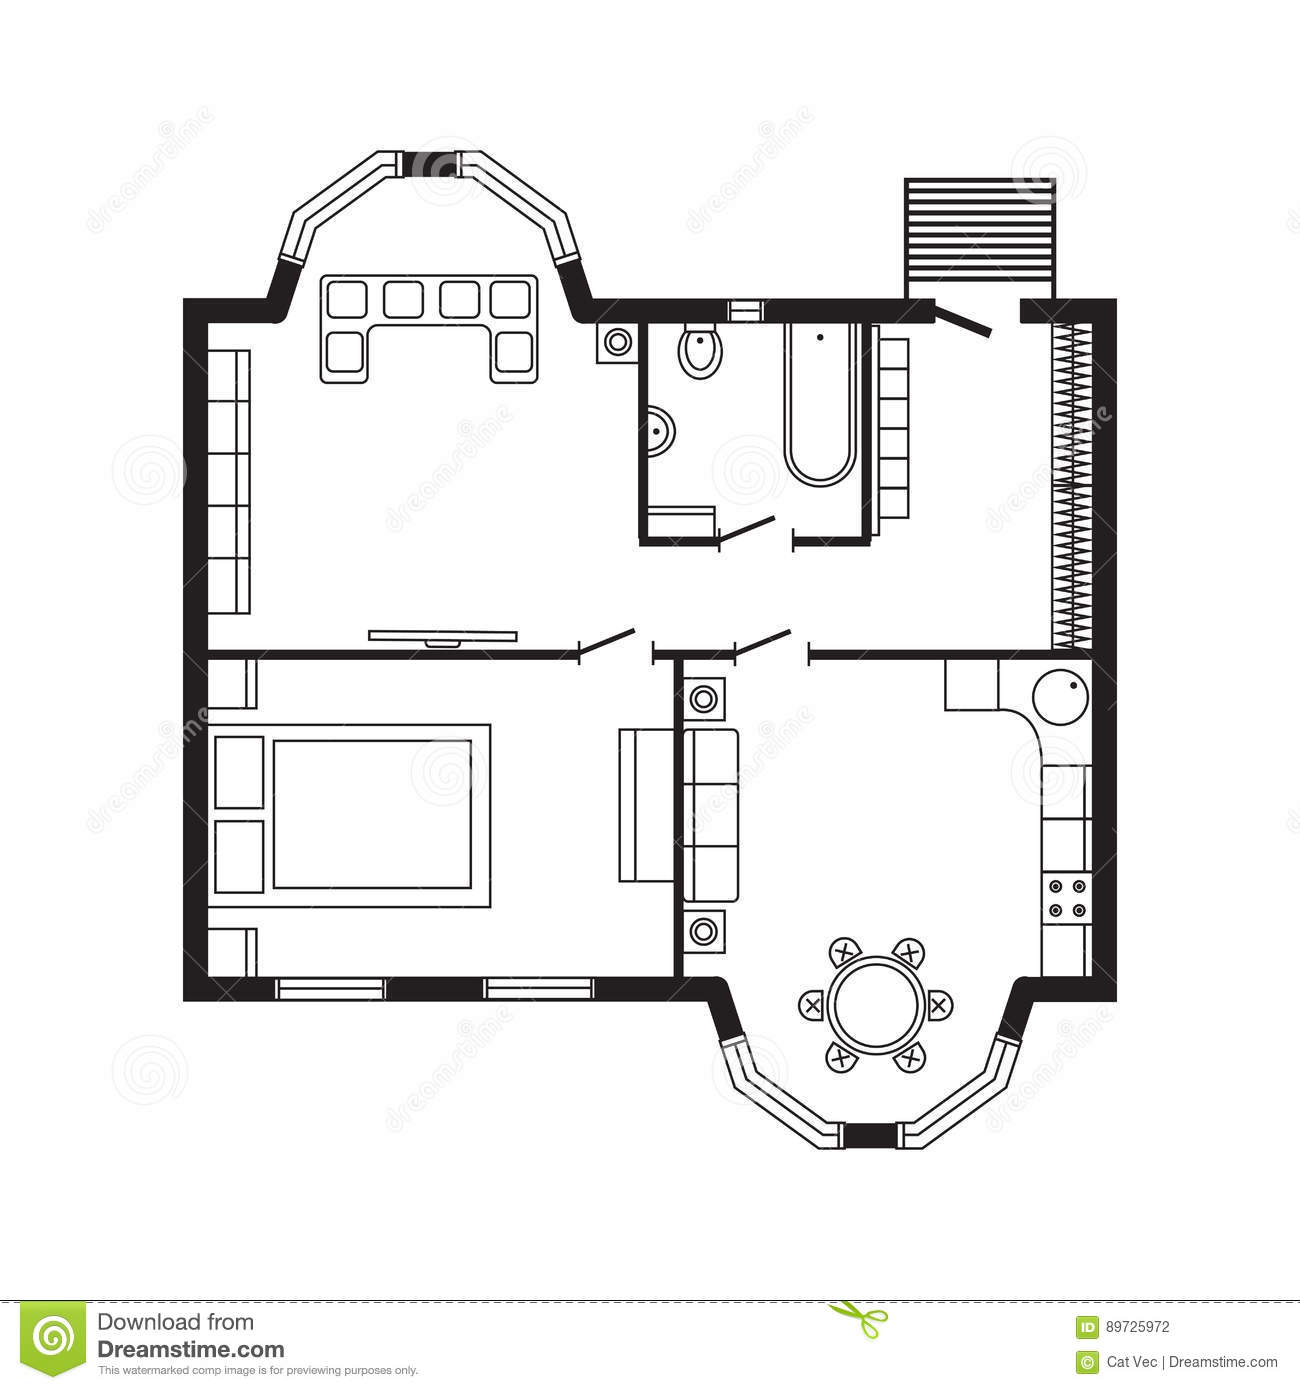 Modern office architectural plan interior furniture and for Home of architecture for engineering consultants